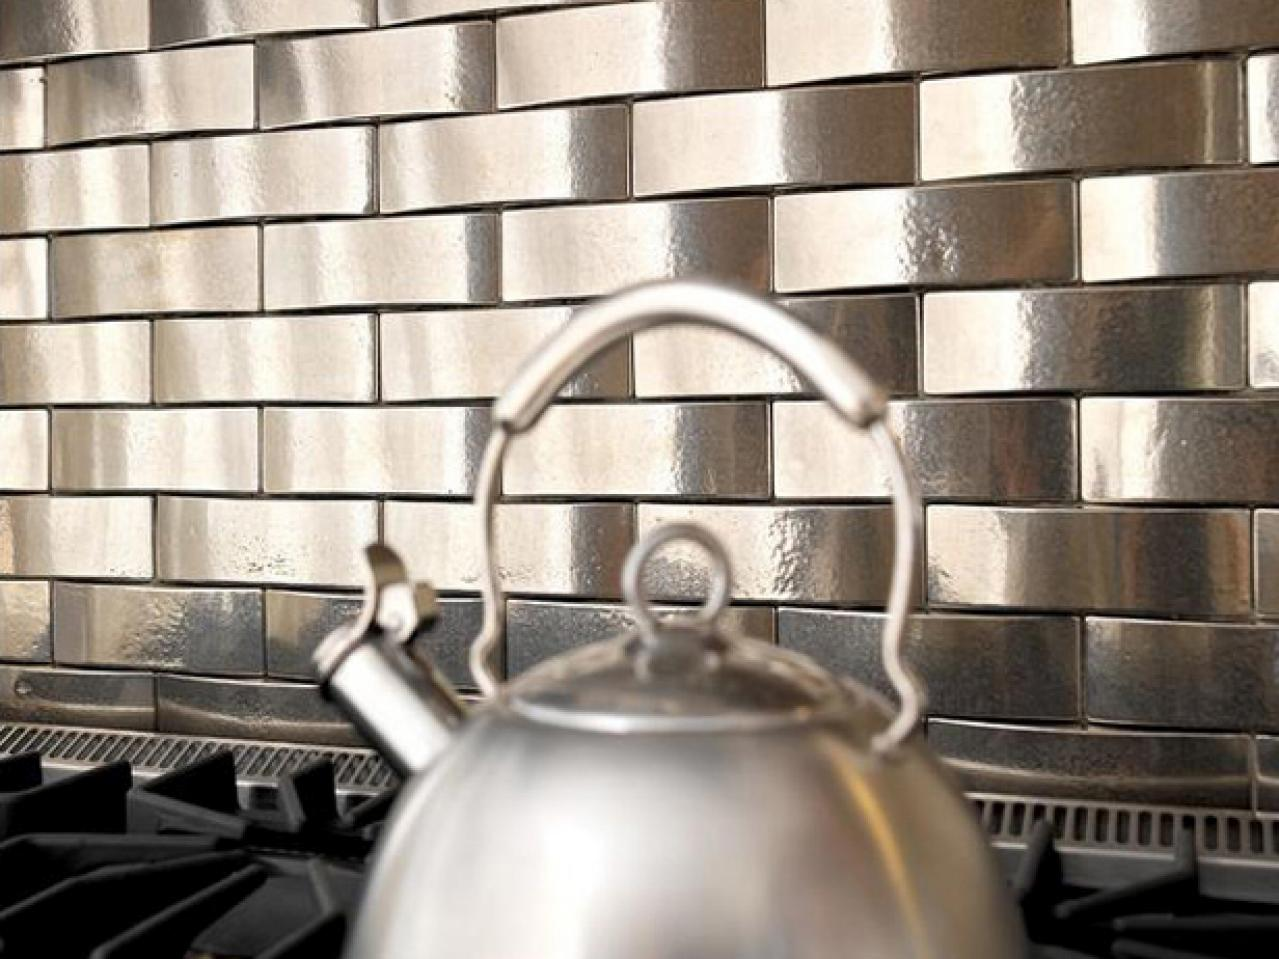 original_metal-backsplashes-ribbon-silver_s4x3.jpg.rend.hgtvcom.1280.960